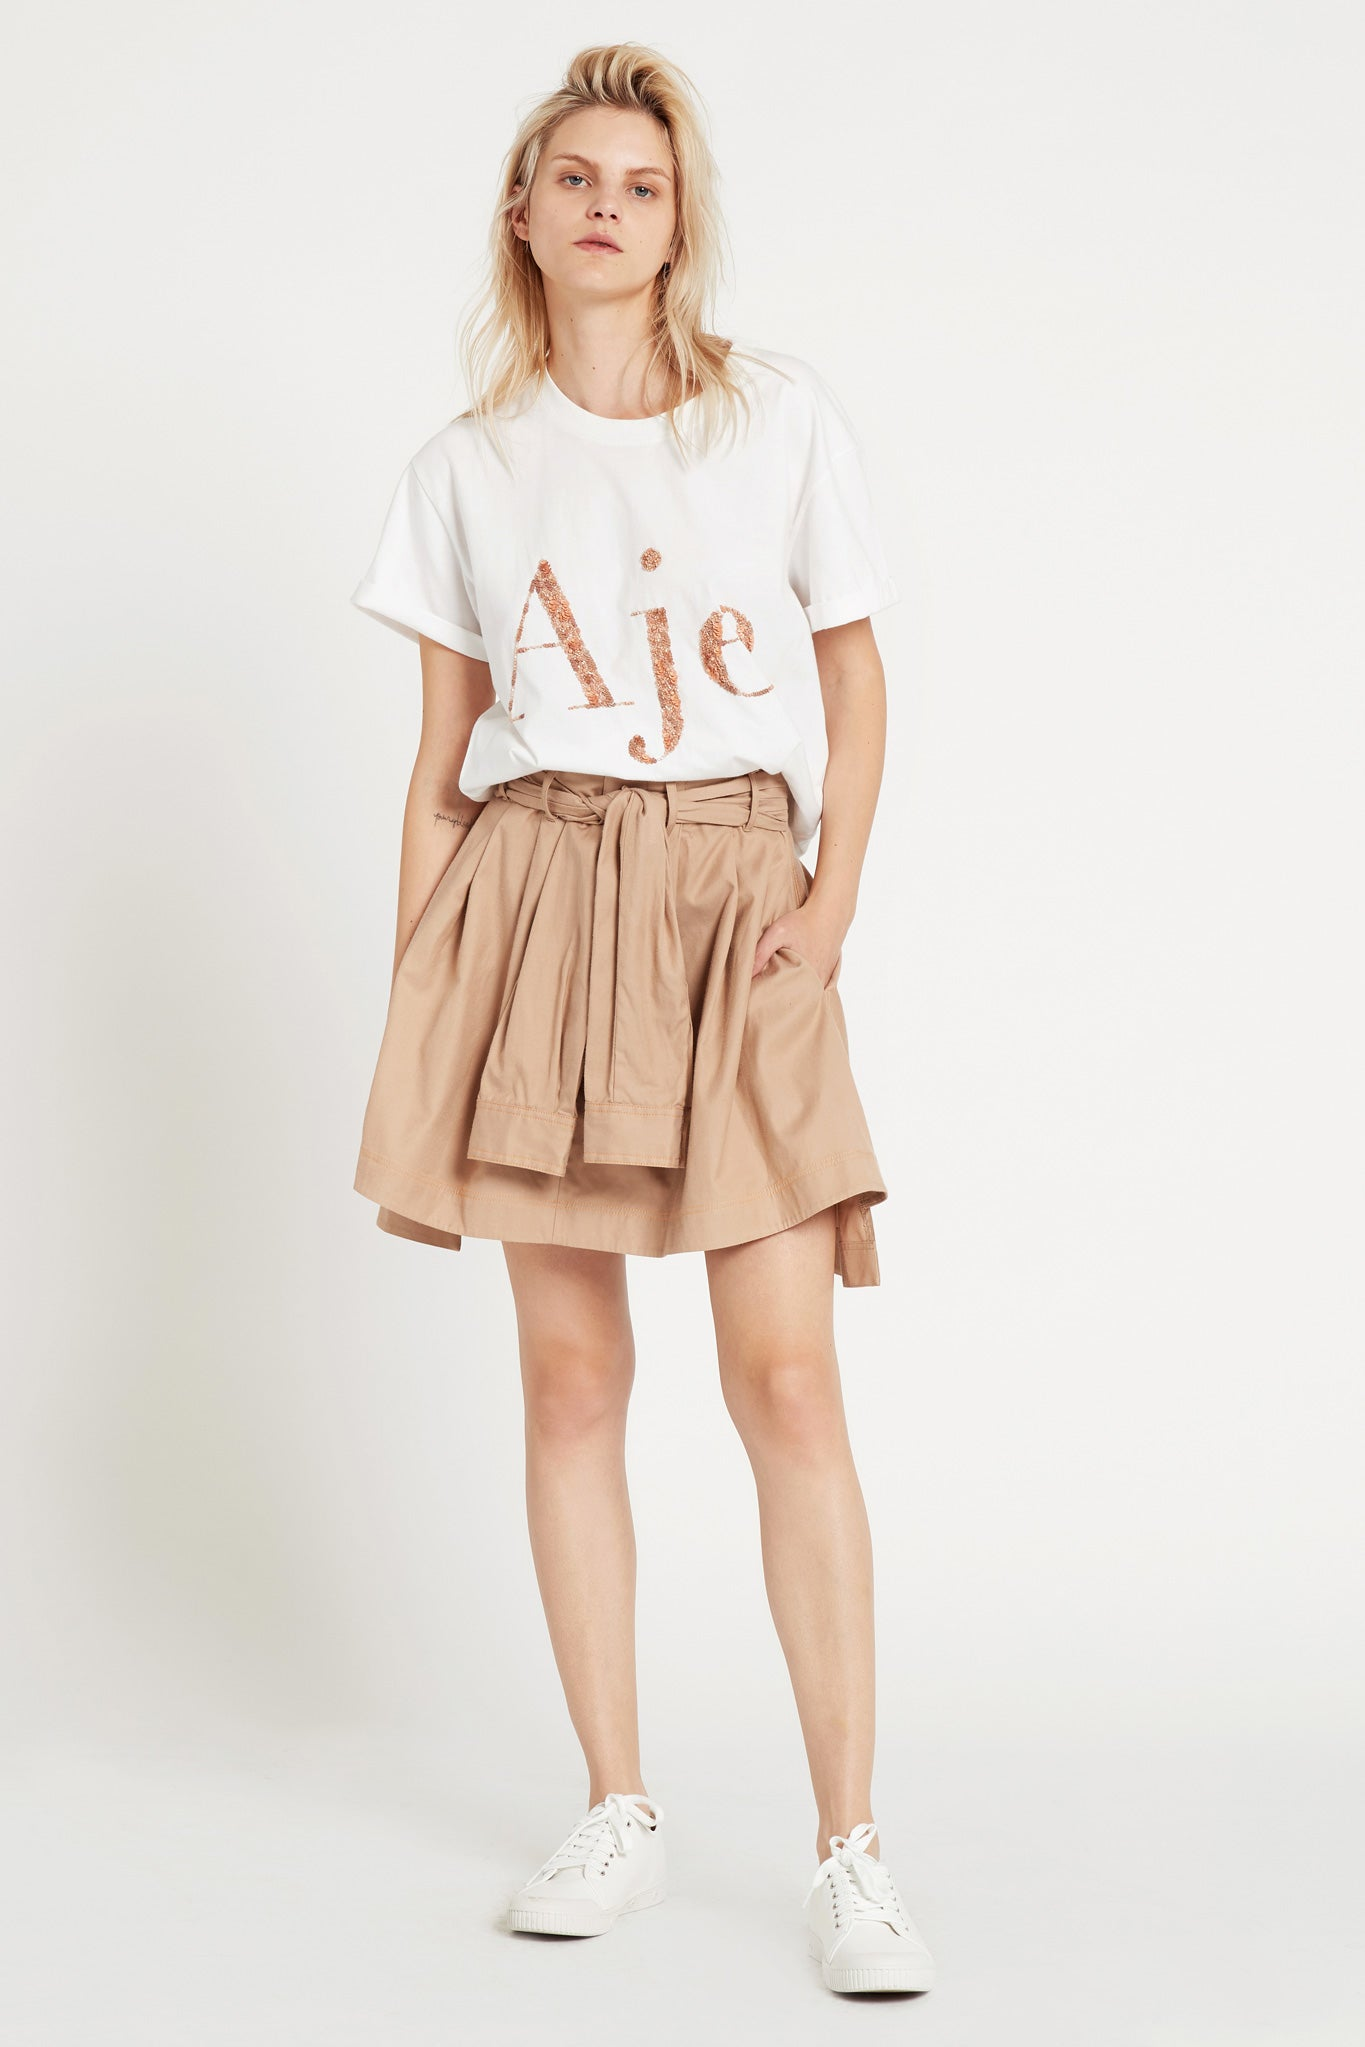 Aje Logo Tee Outfit View